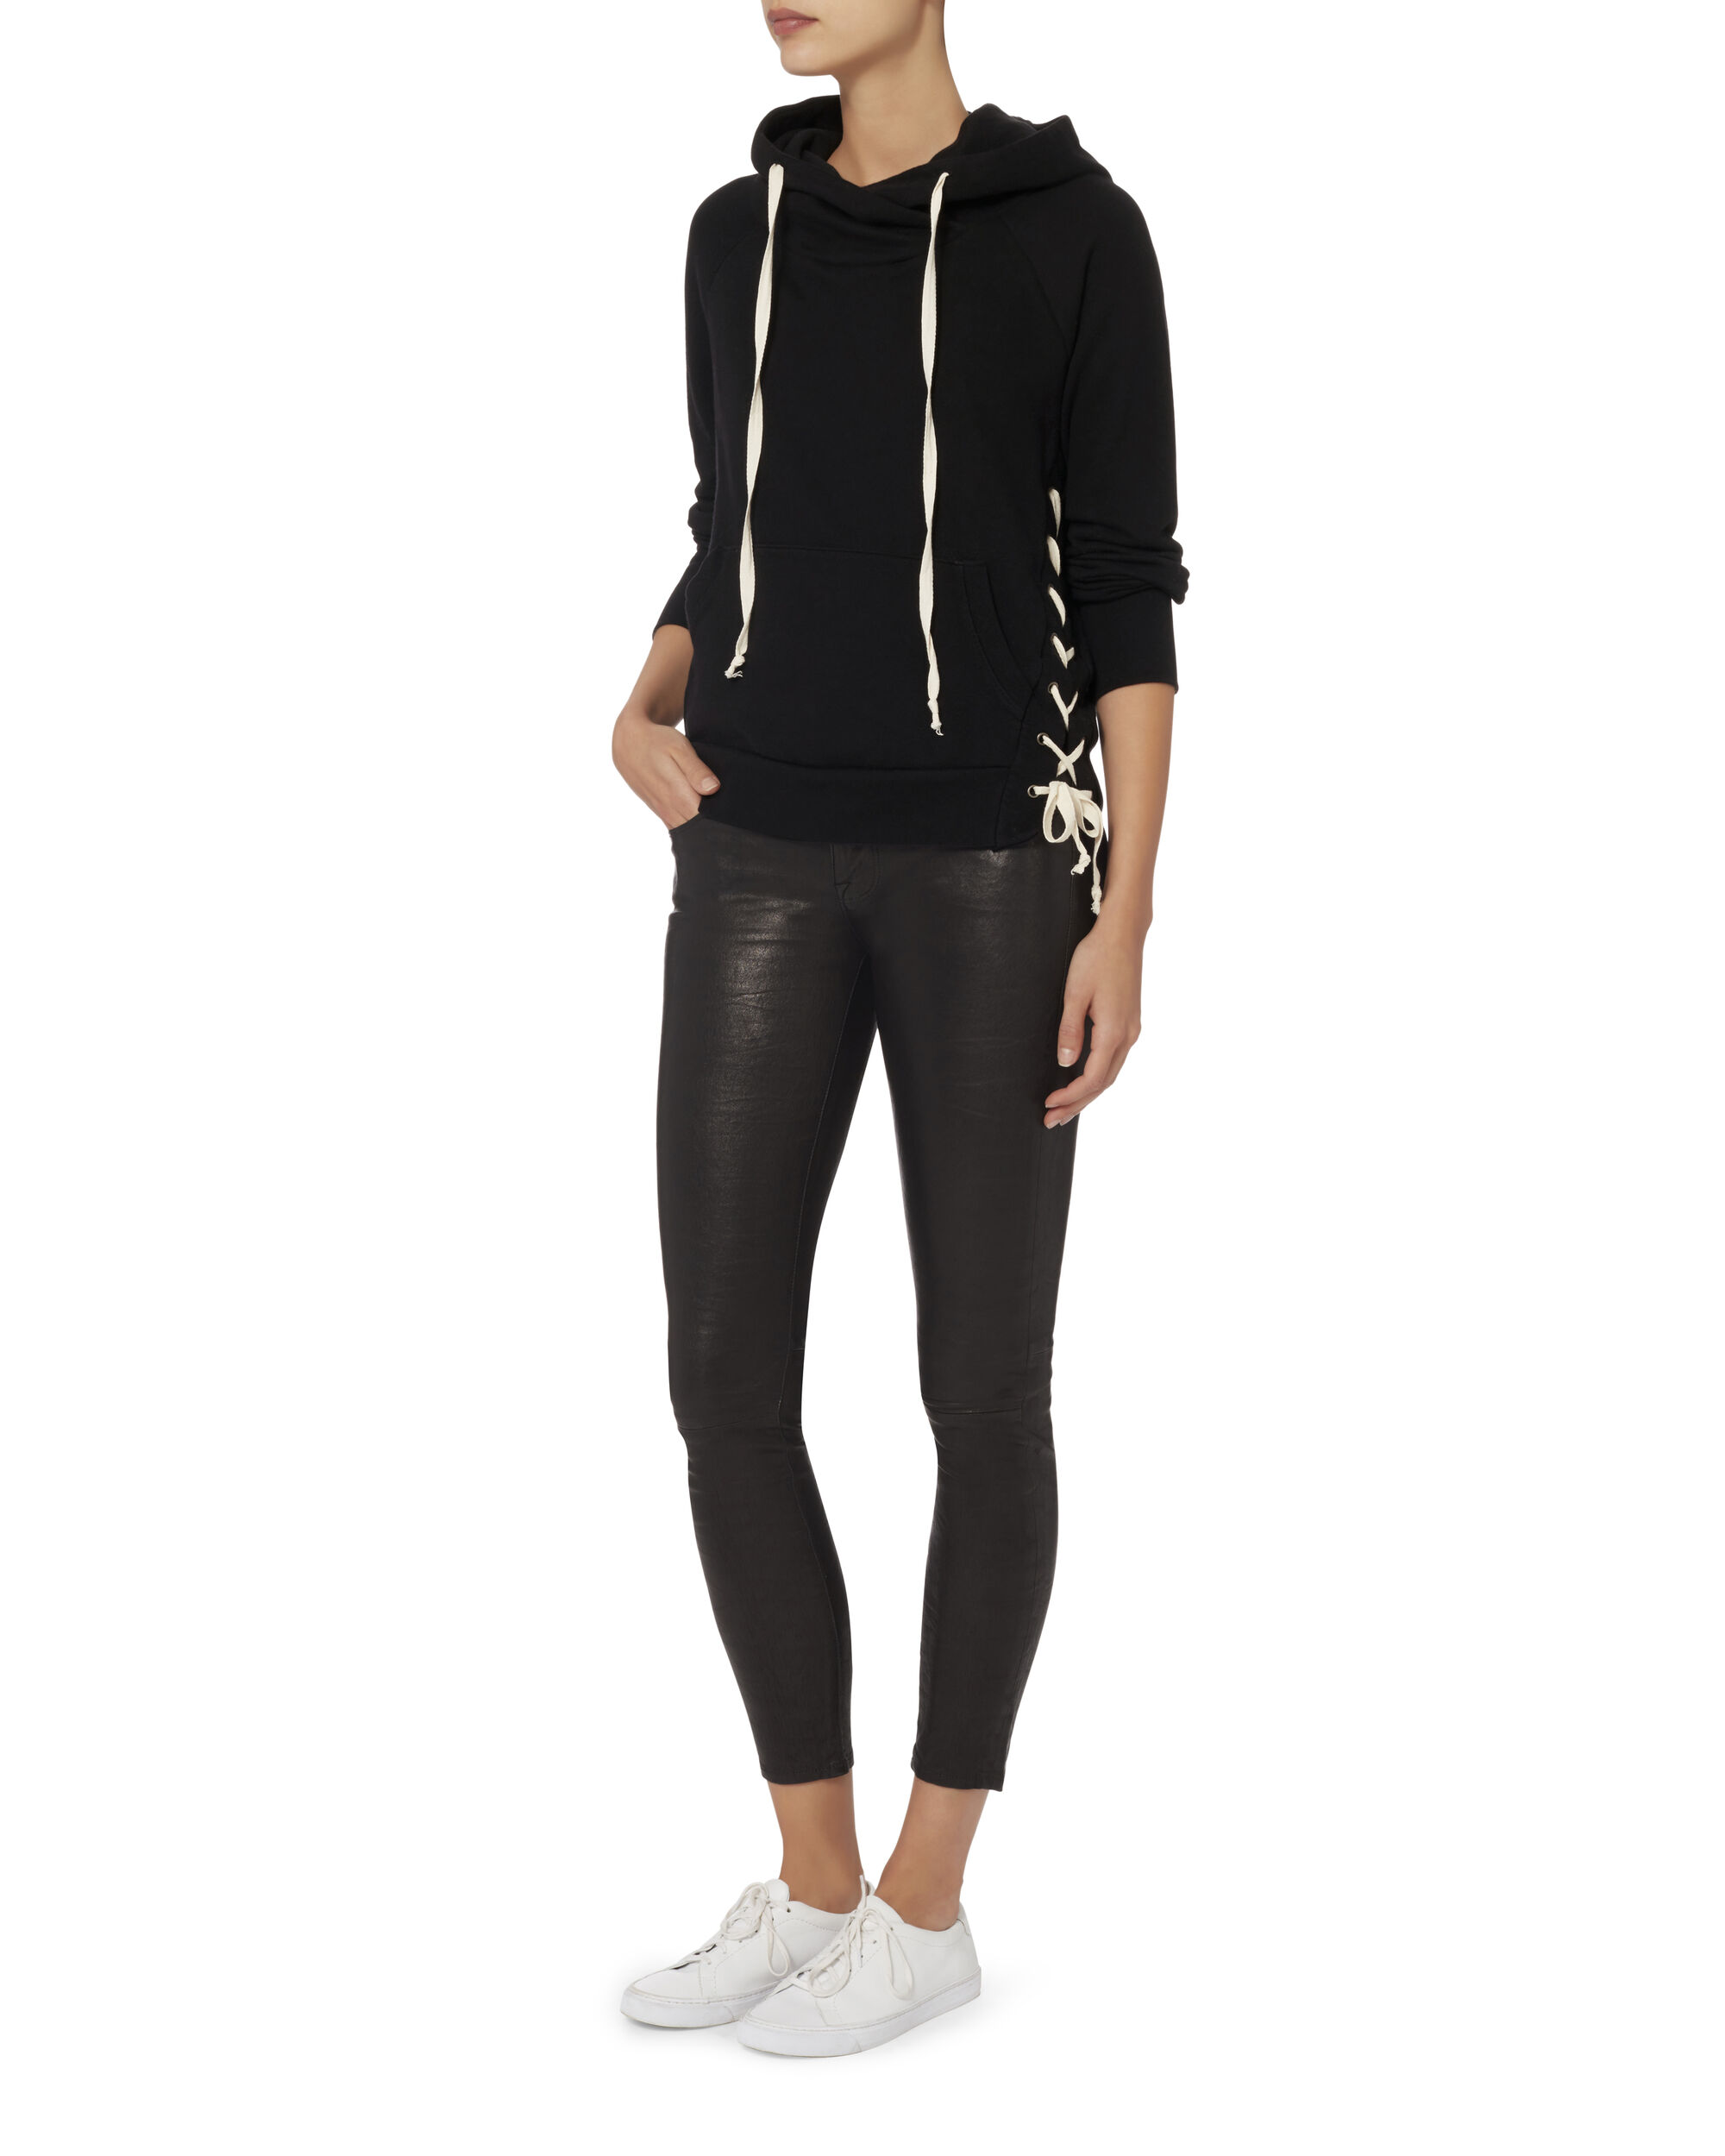 Enzo Lace-Up Side Sweatshirt, BLACK, hi-res